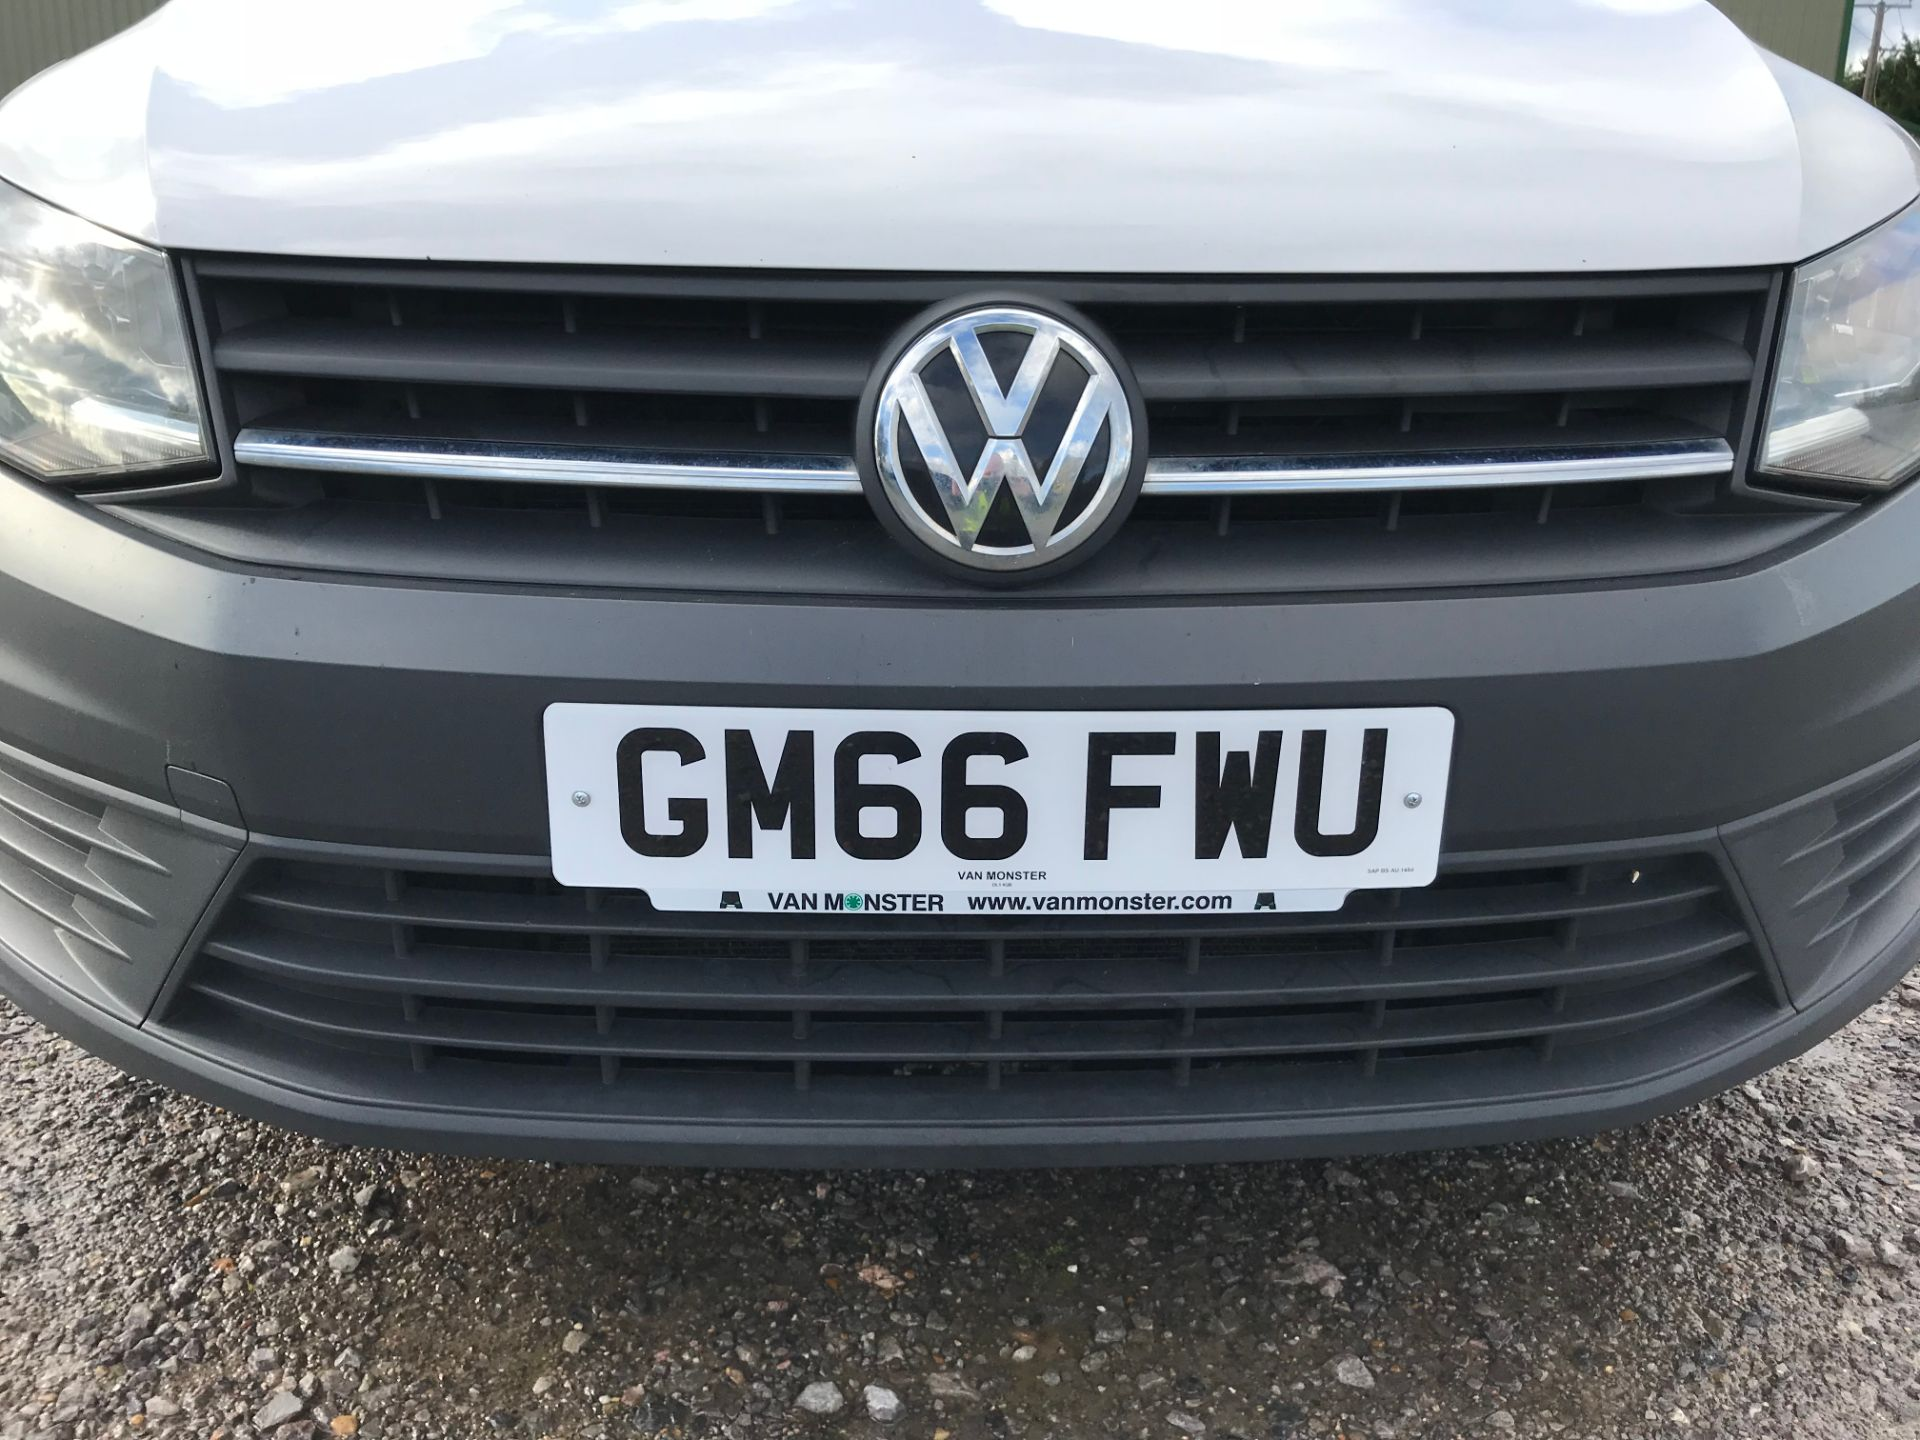 2017 Volkswagen Caddy 2.0 Tdi Bluemotion Tech 102Ps Startline Van (GM66FWU) Image 34